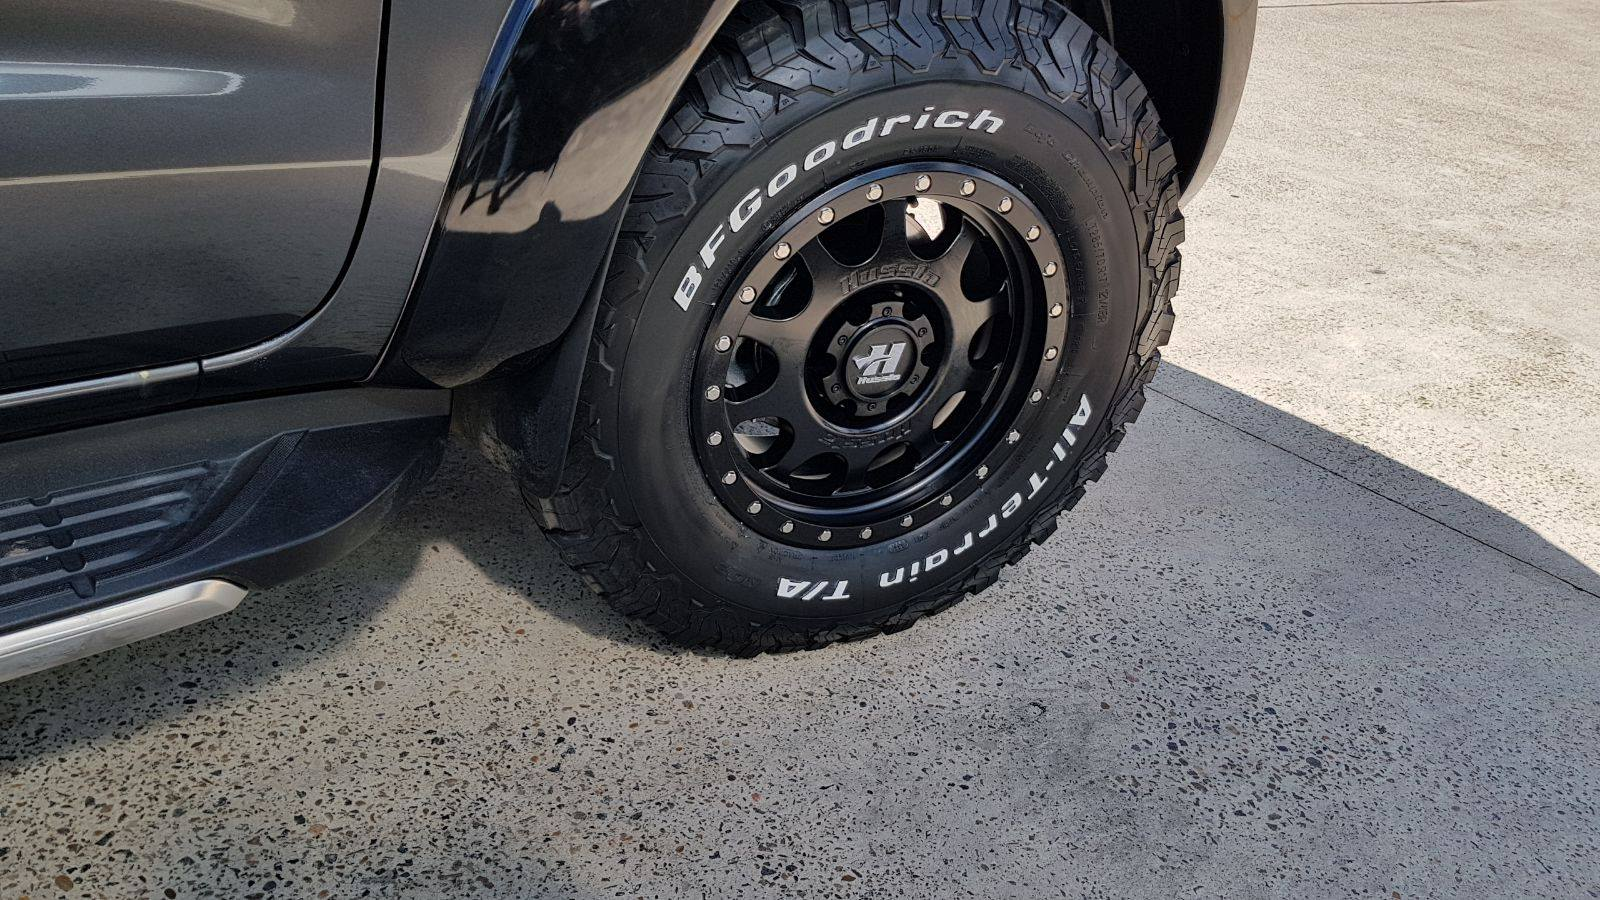 17-hussla-raptor-wheels-wrapped-in-lt285-70r17-all-terrain-tyres-2